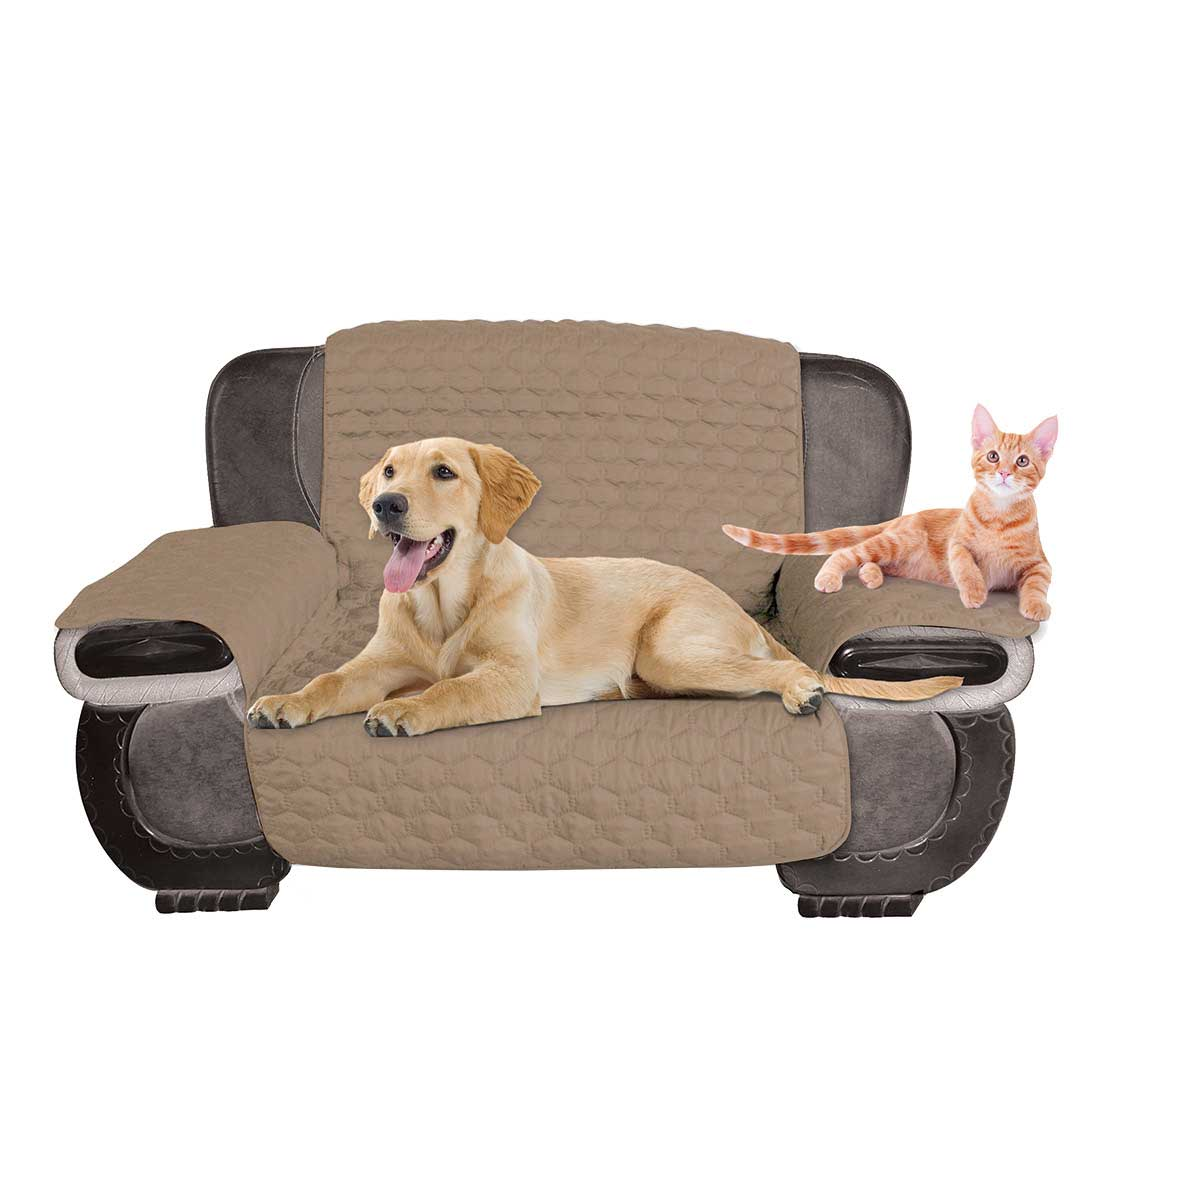 Protective Furniture Cover - Protects from Animal Hair, Dirt, and Stains